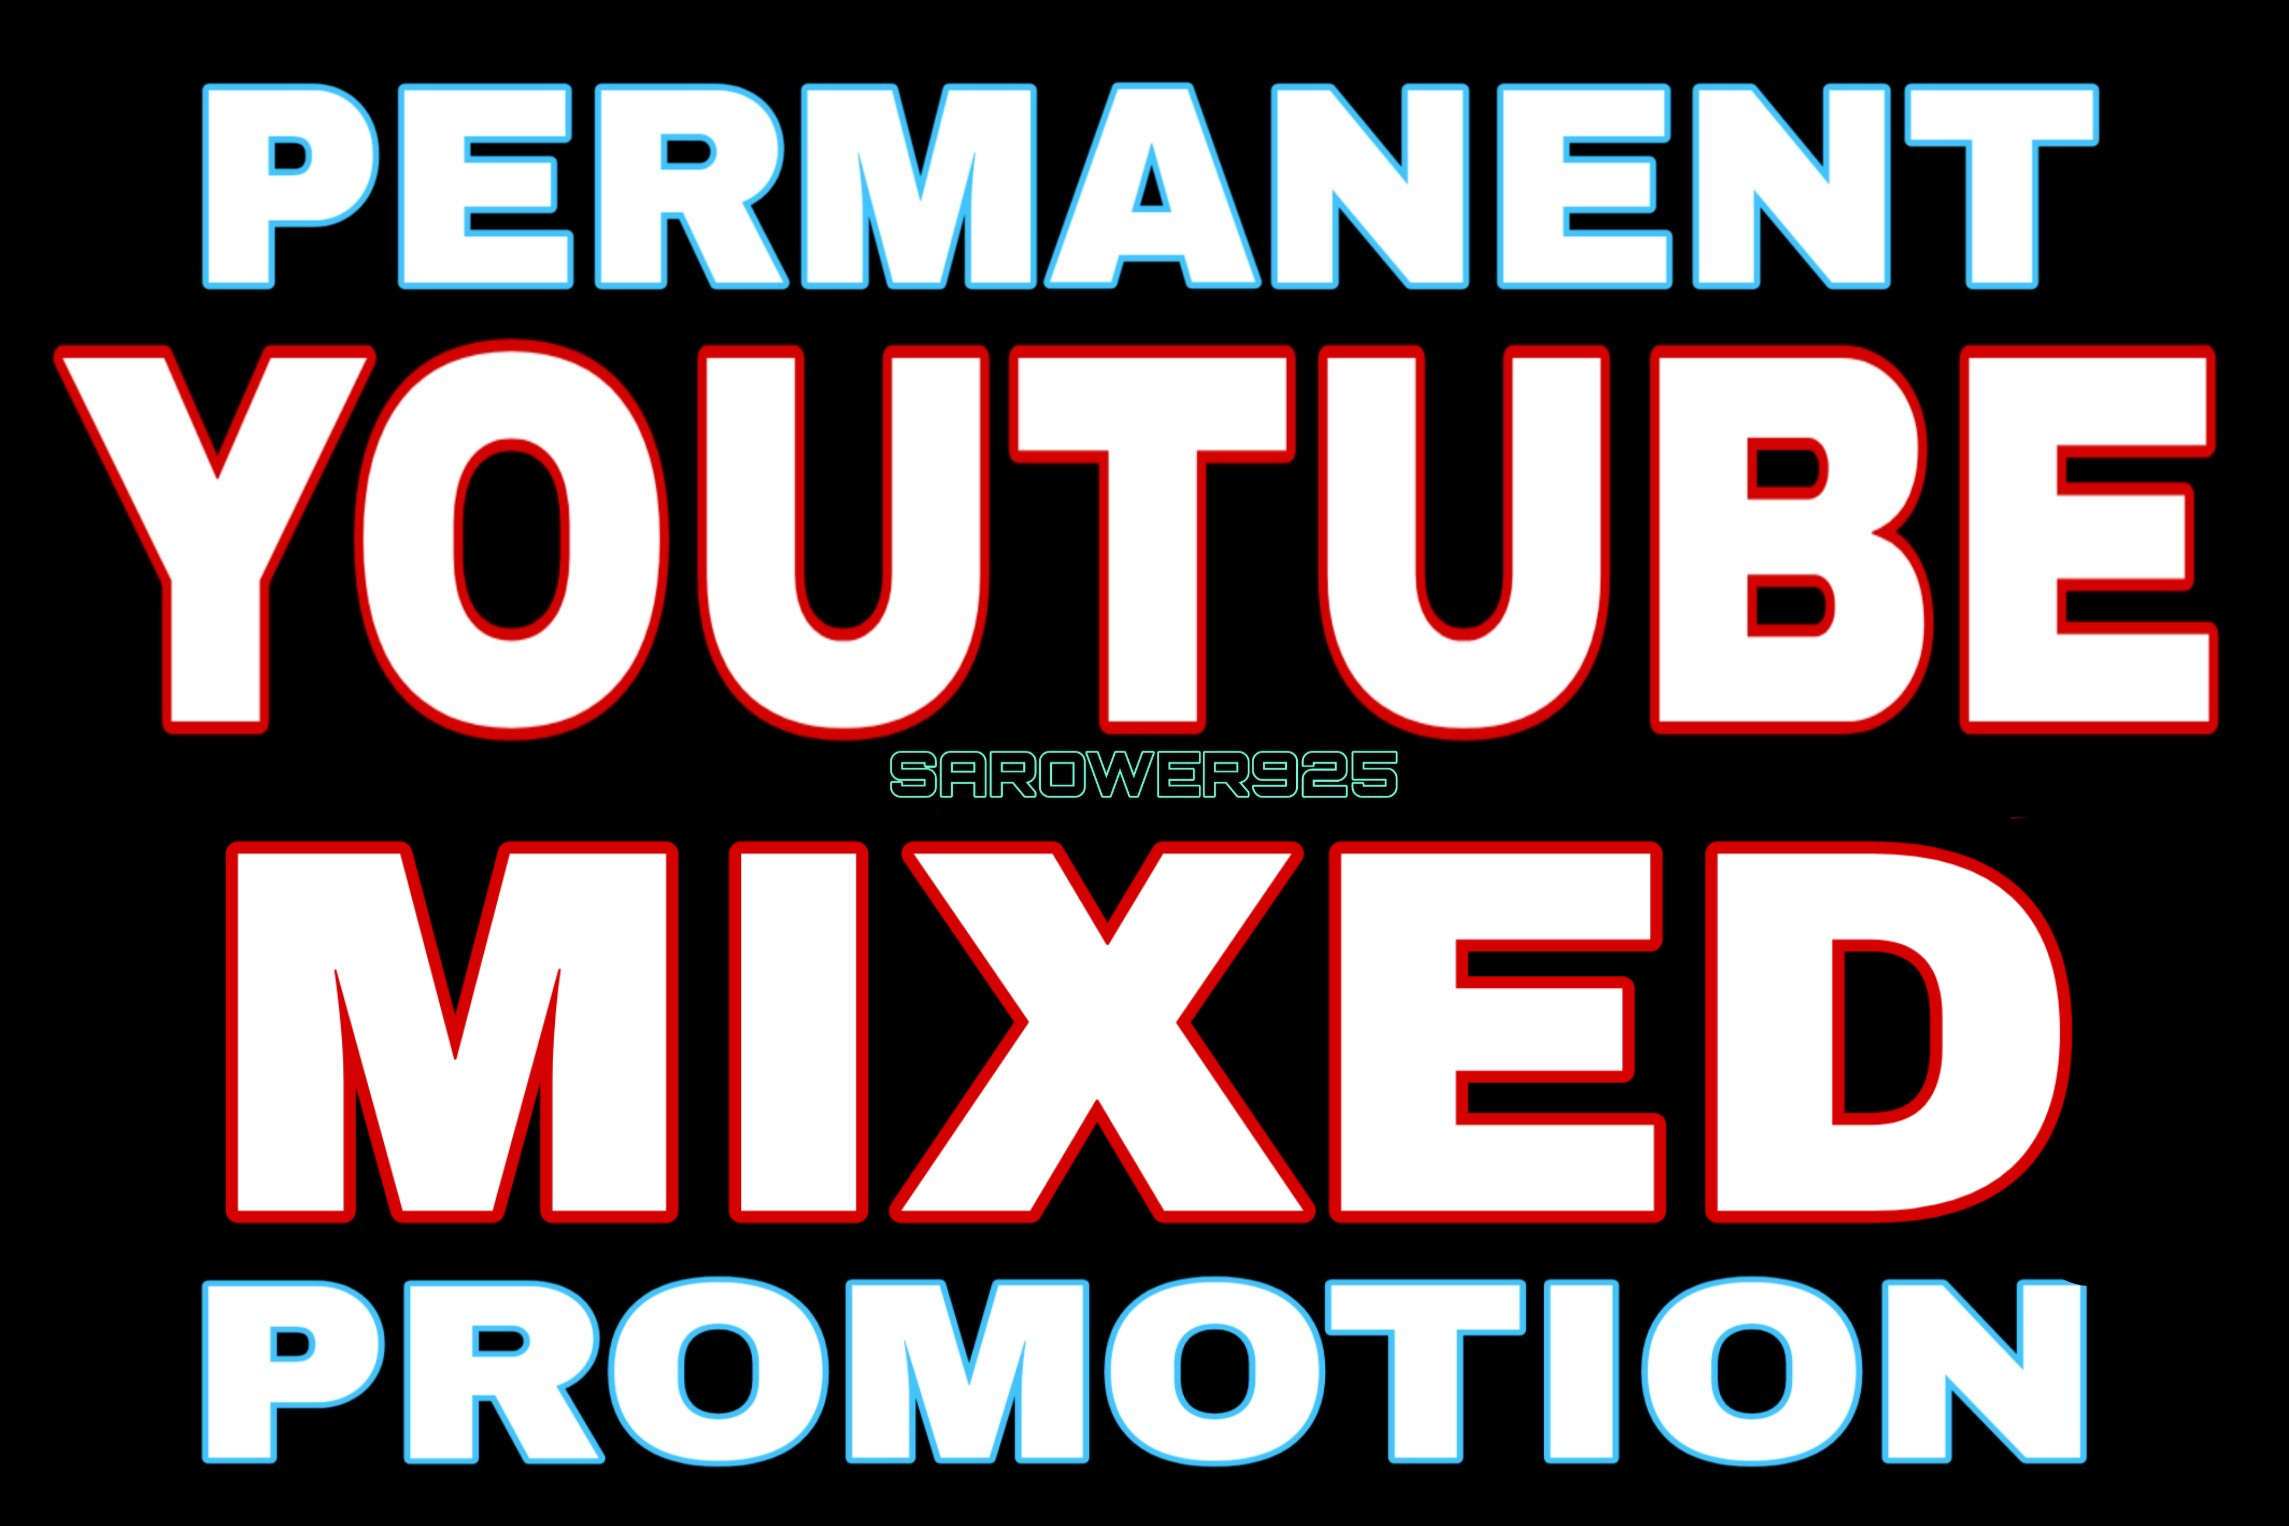 Permanent youtube mixed promotion via real users